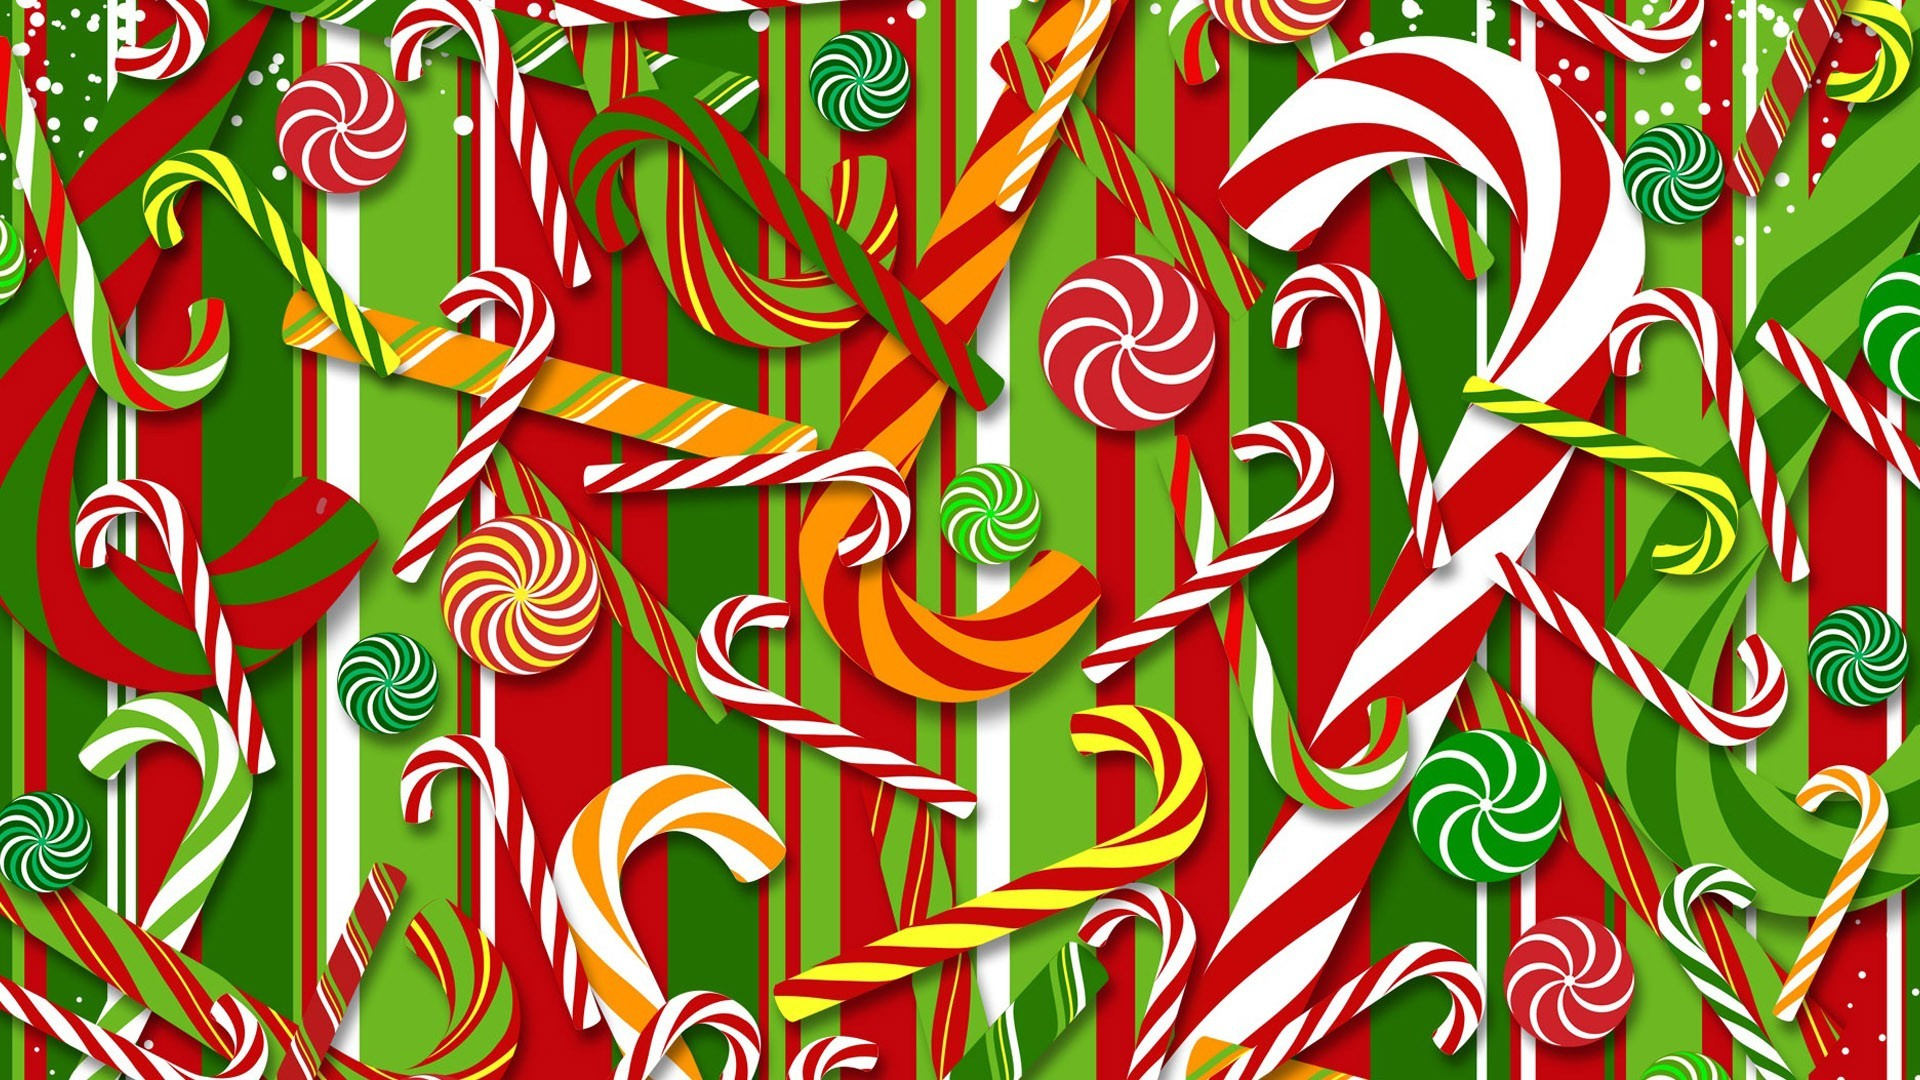 Christmas Candy Cane Wallpaper 1920x1080